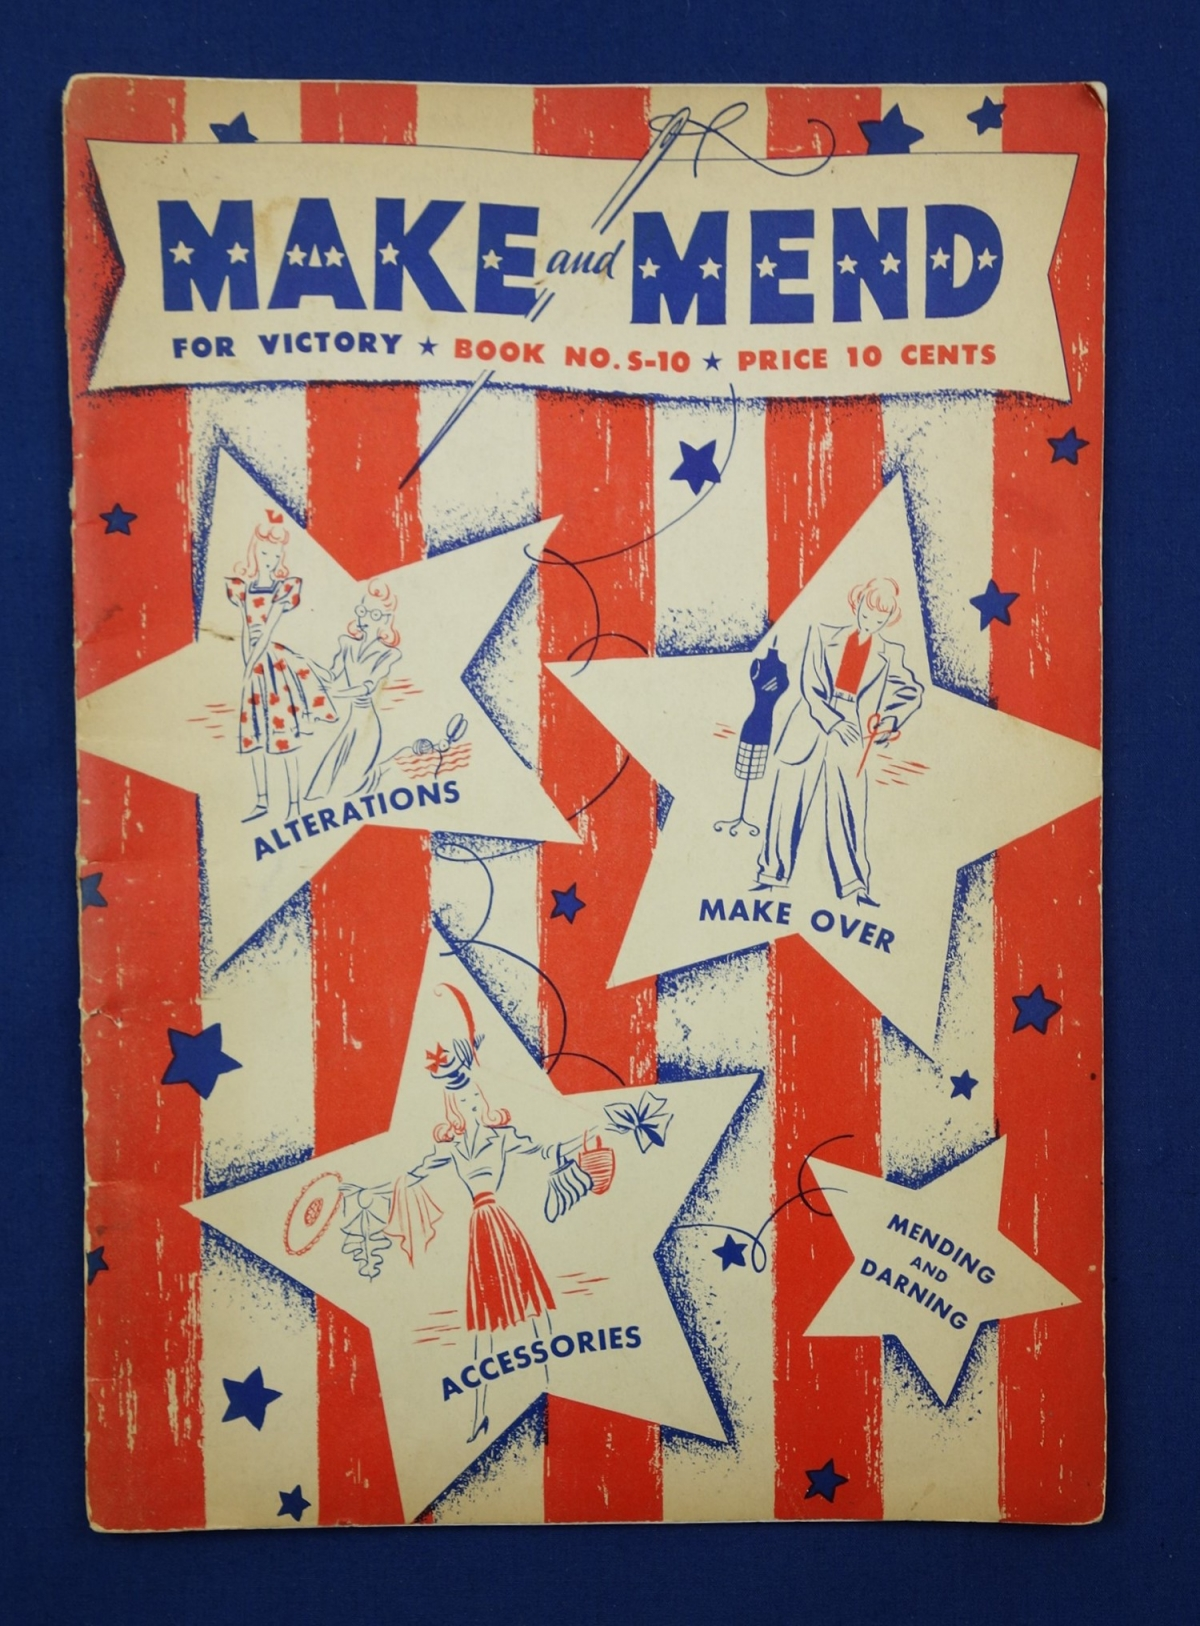 "Booklet entitled ""Make and Mend for Victory"". It contains information about sewing, mending, alterations, re-modeling, accessories and so forth. USA, 1942."